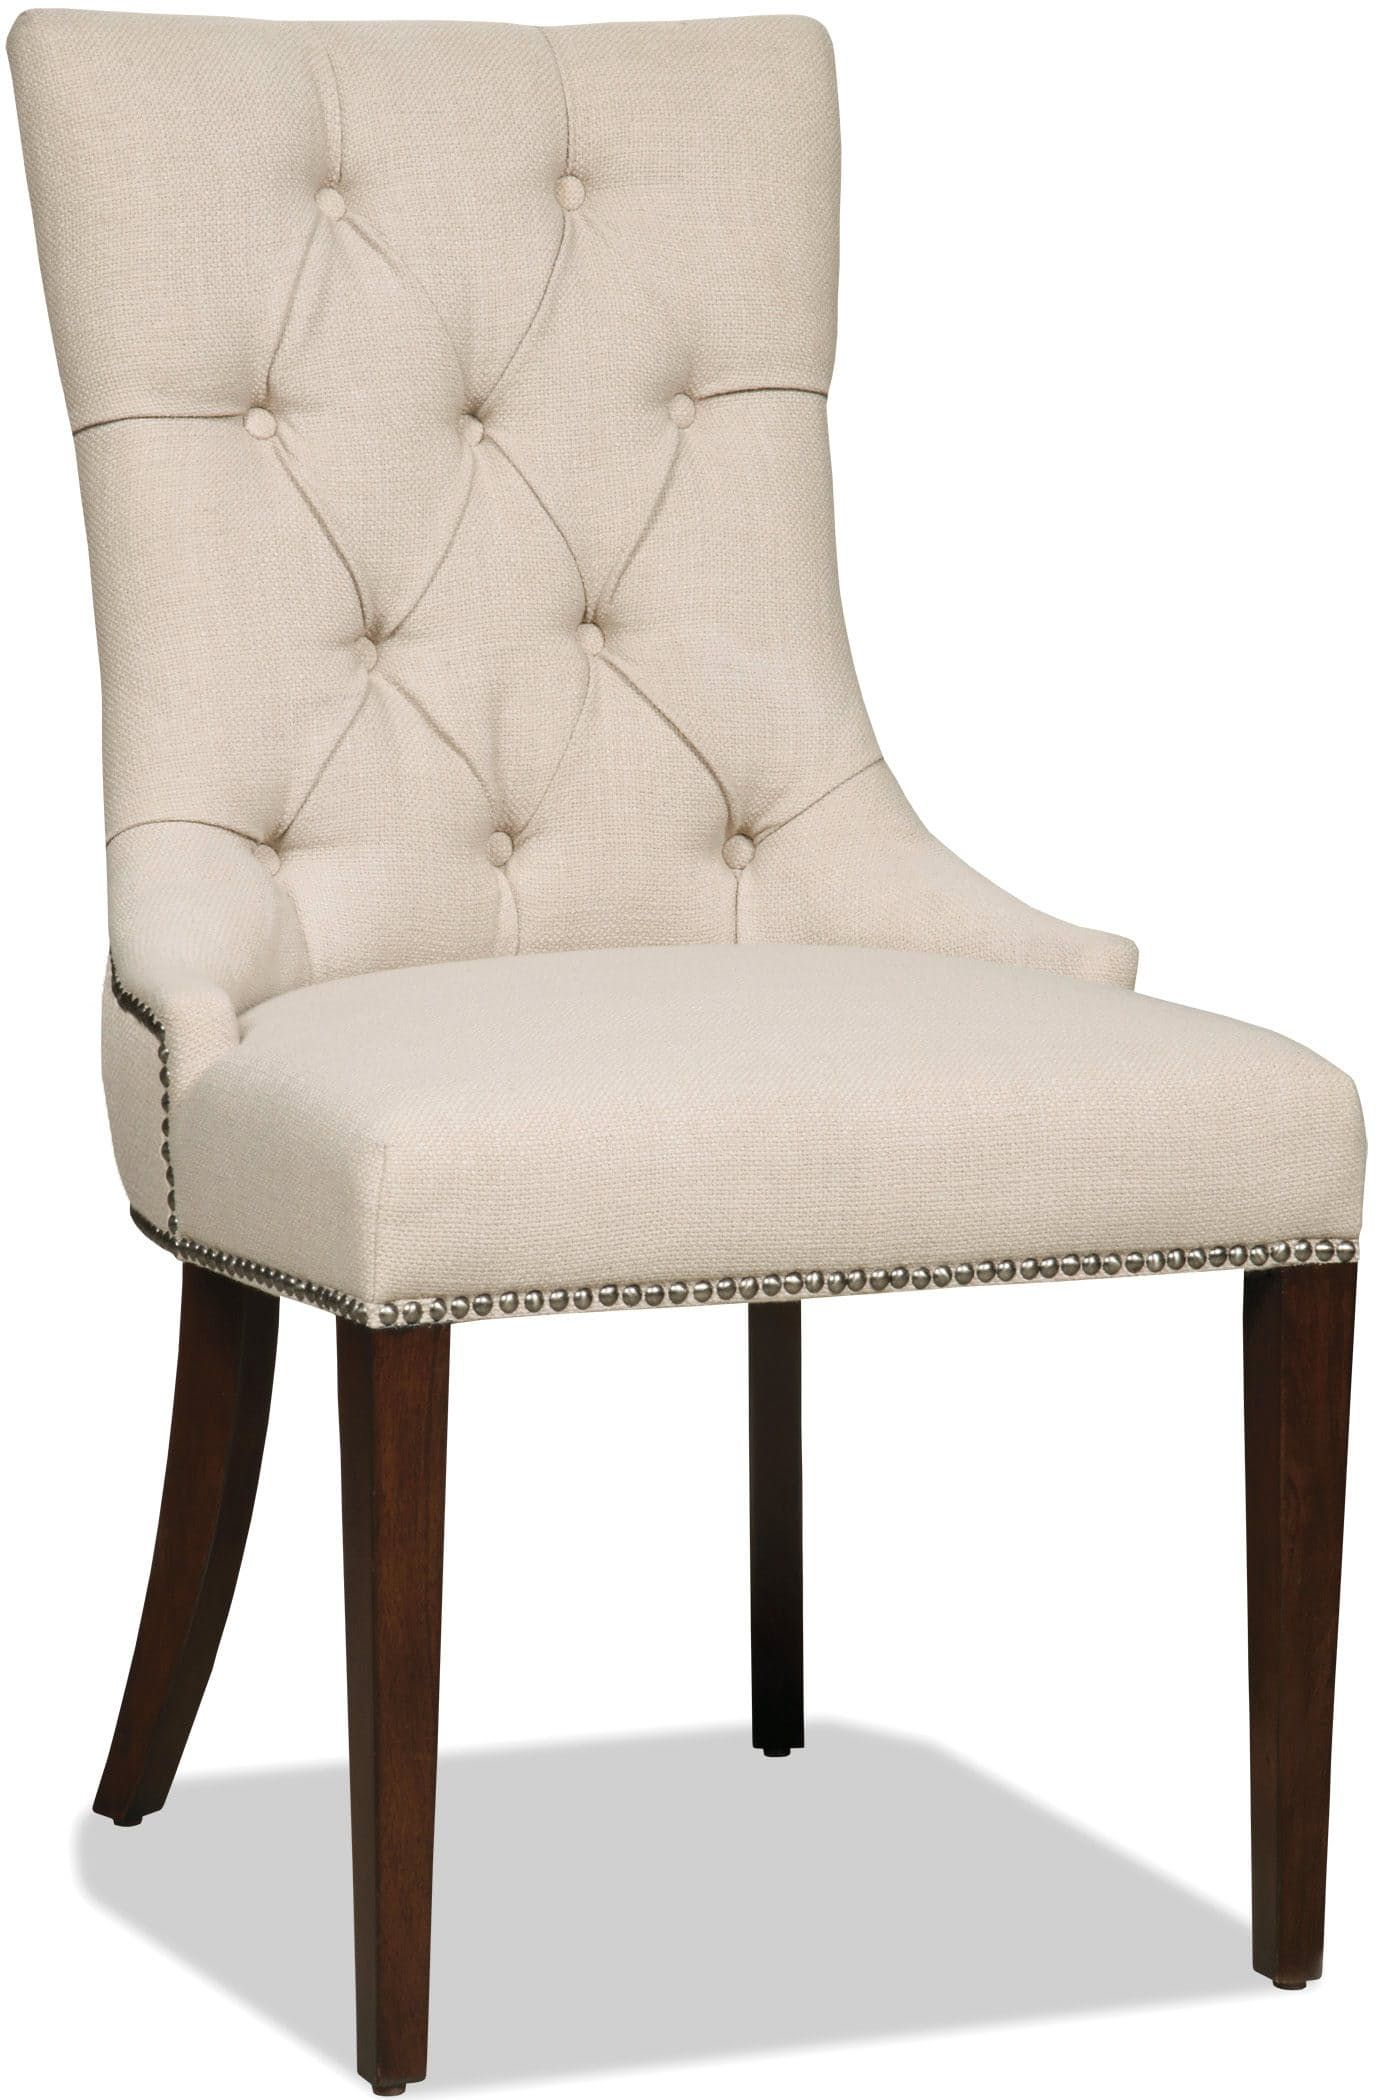 Hooker Furniture Dining Room Lindy Linen Dining Chair 300-350031 ...